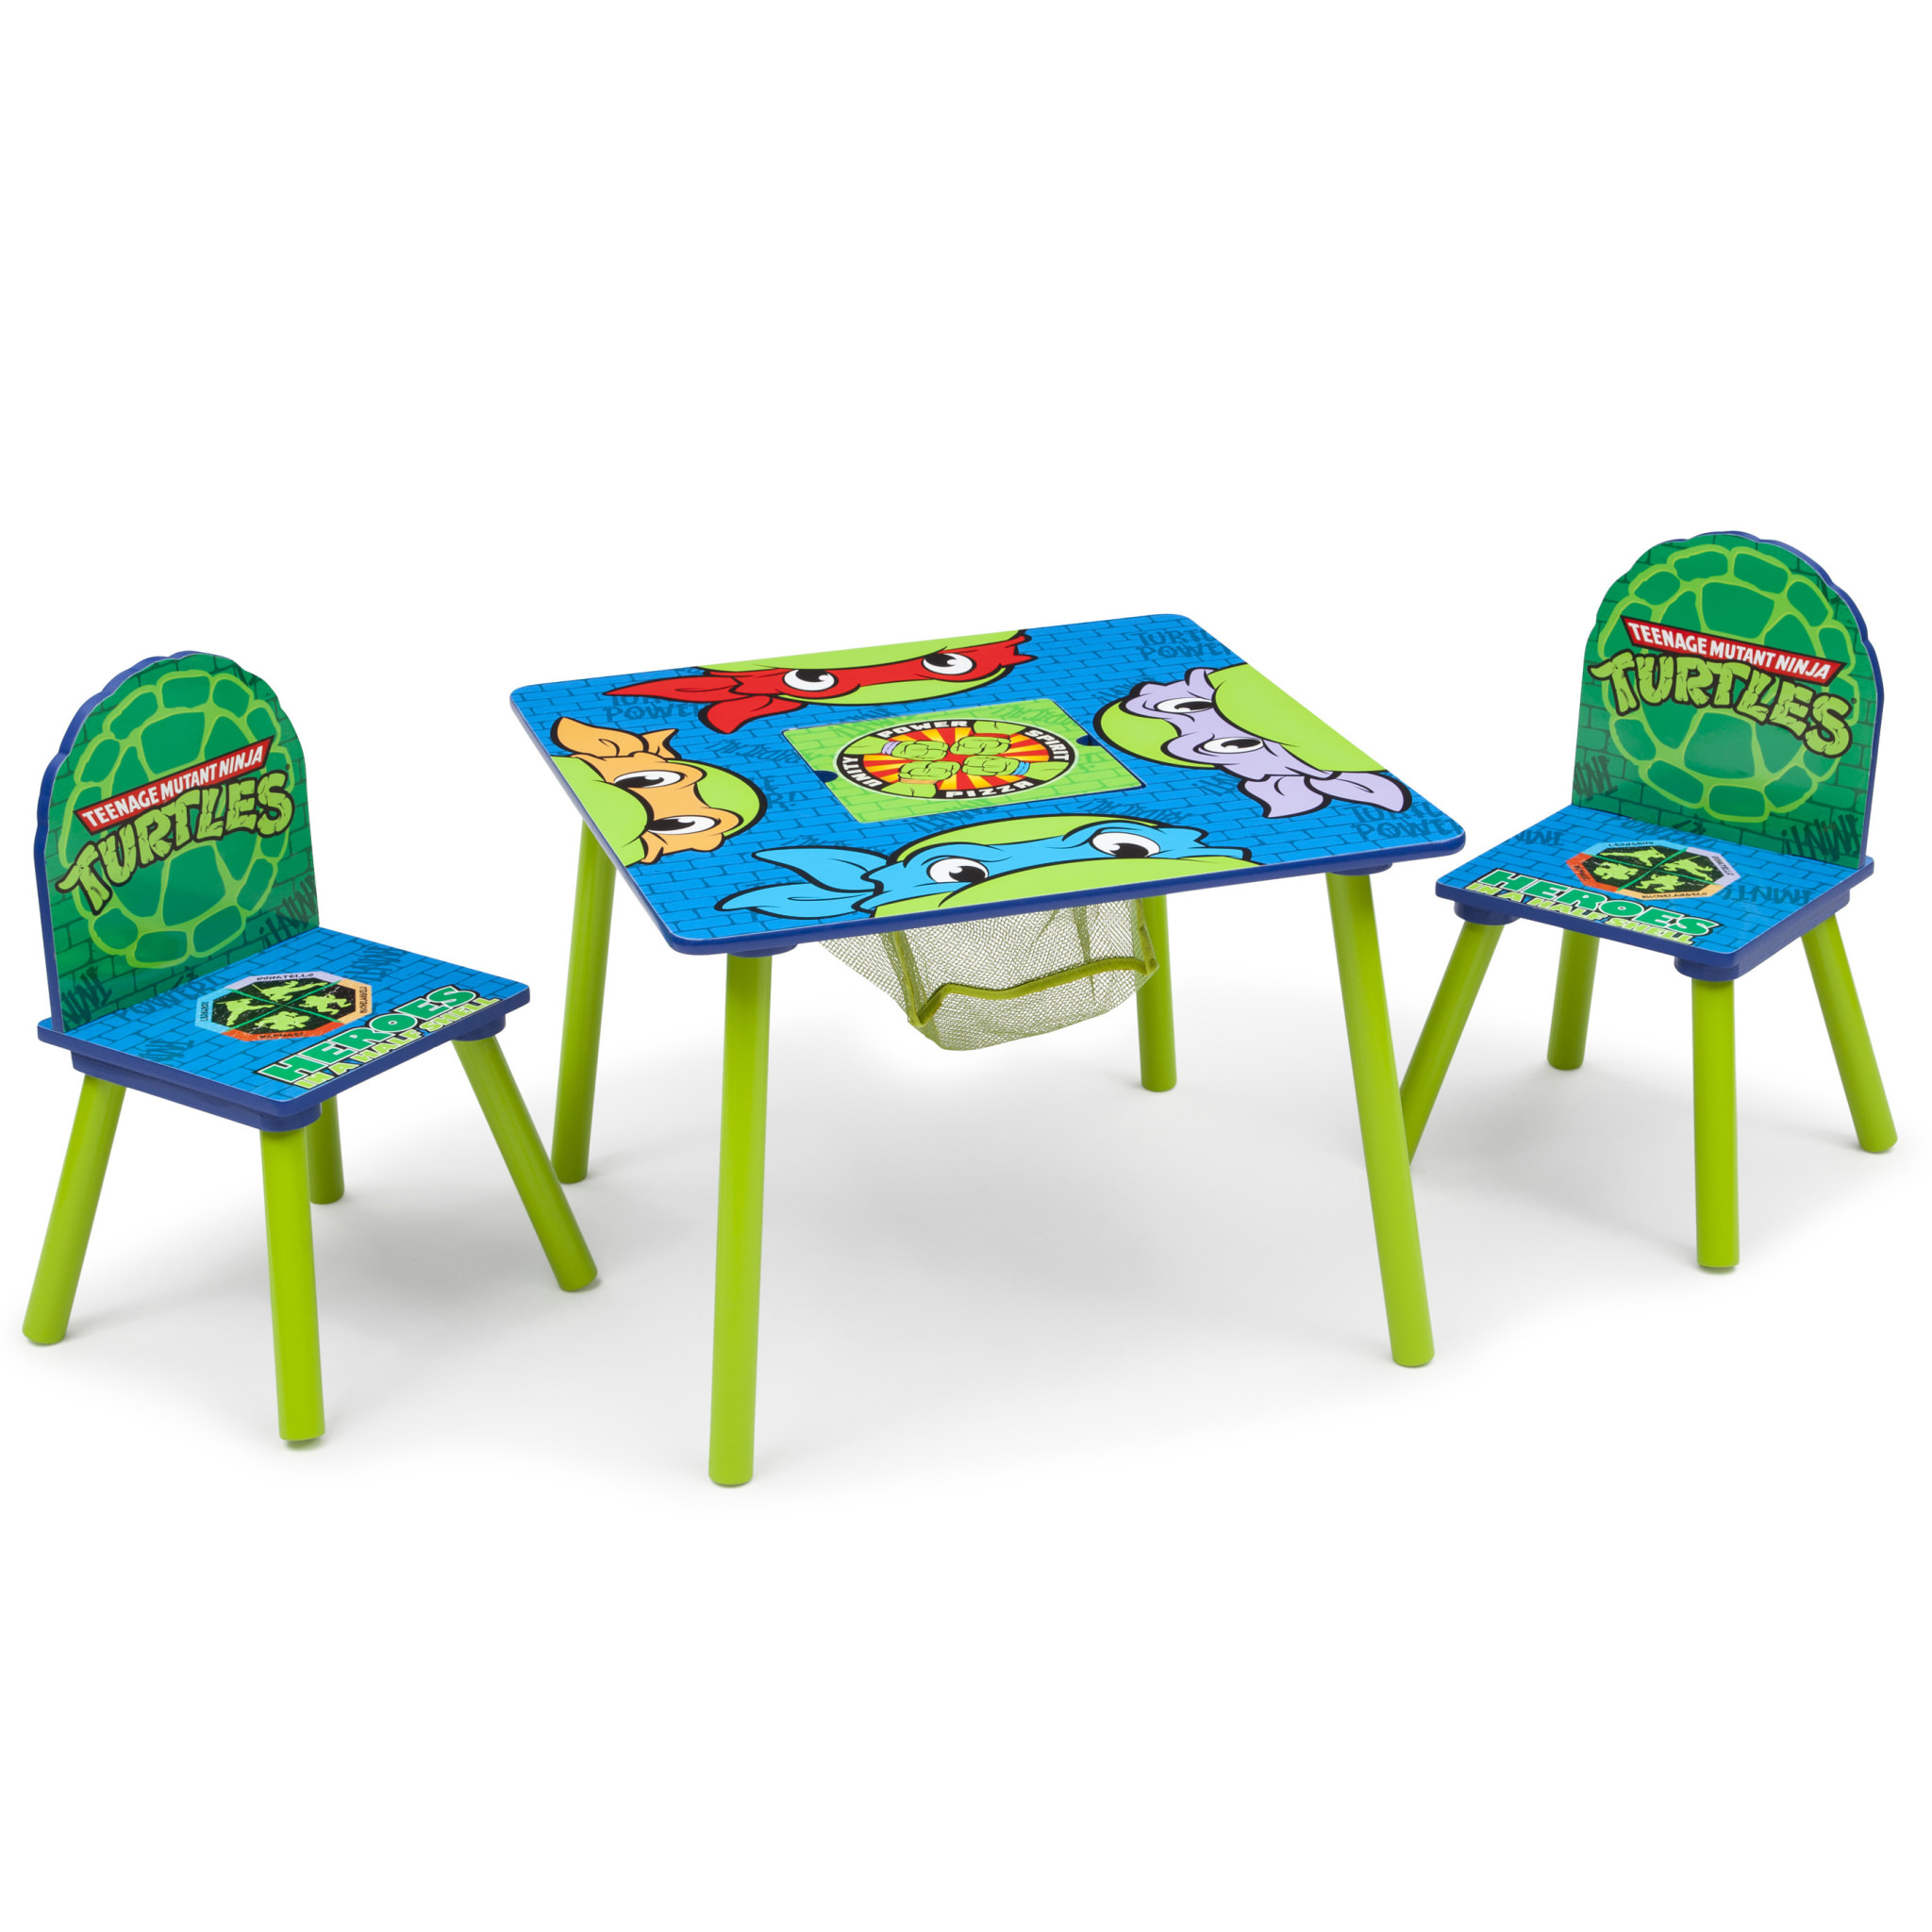 Teenage Mutant Ninja Turtles Toddler Table and Chair Set with Storage